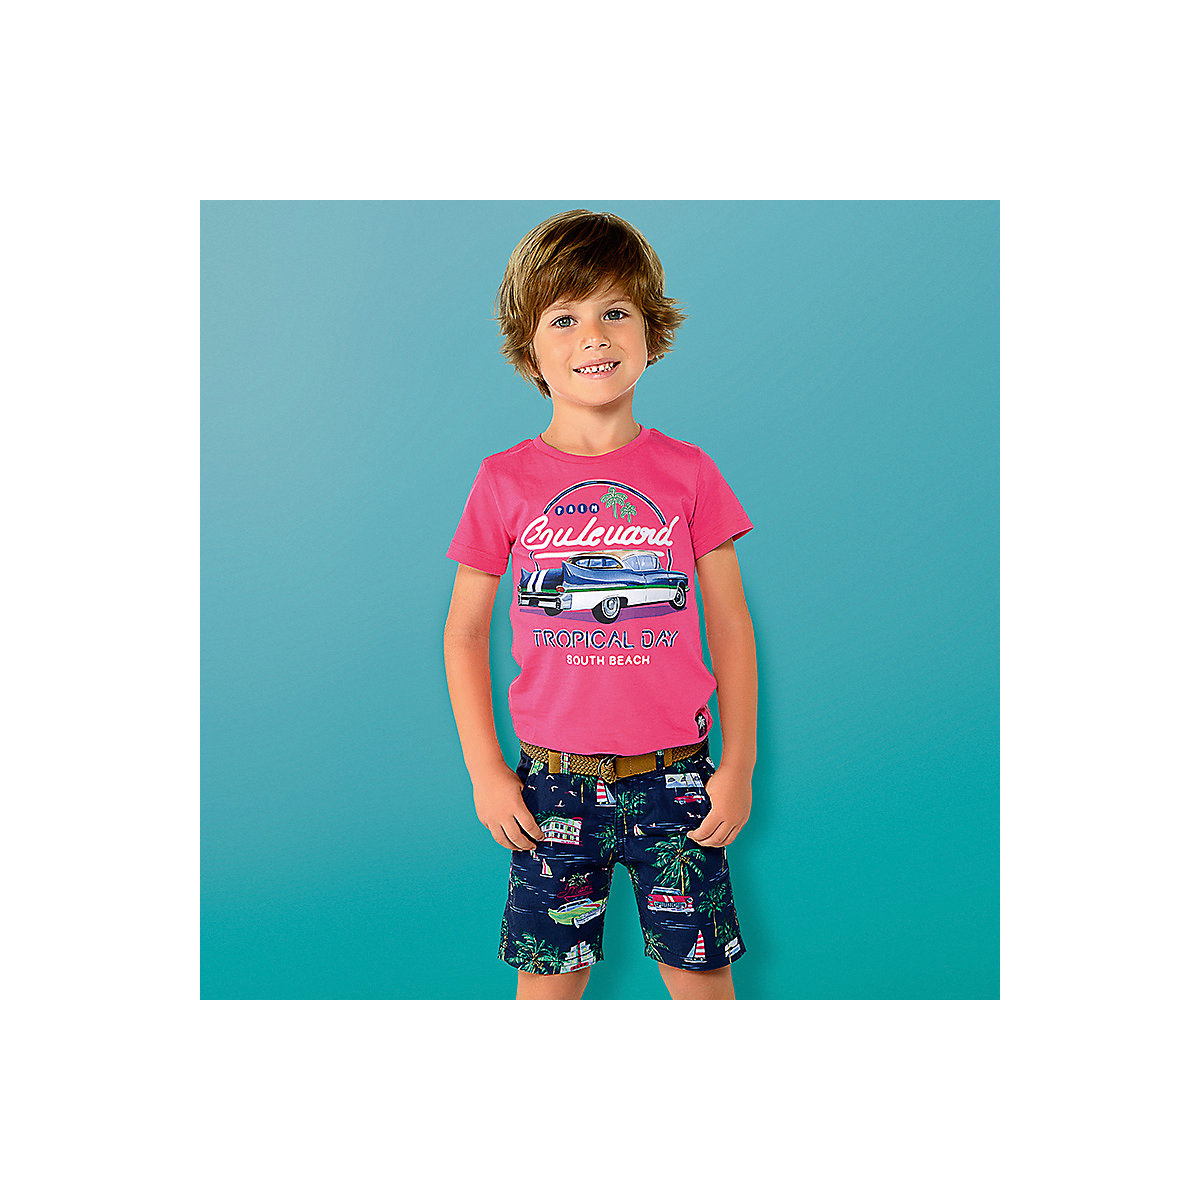 Shorts Mayoral 10693242 Children s Clothing clothes for boys with pockets briefs for kids